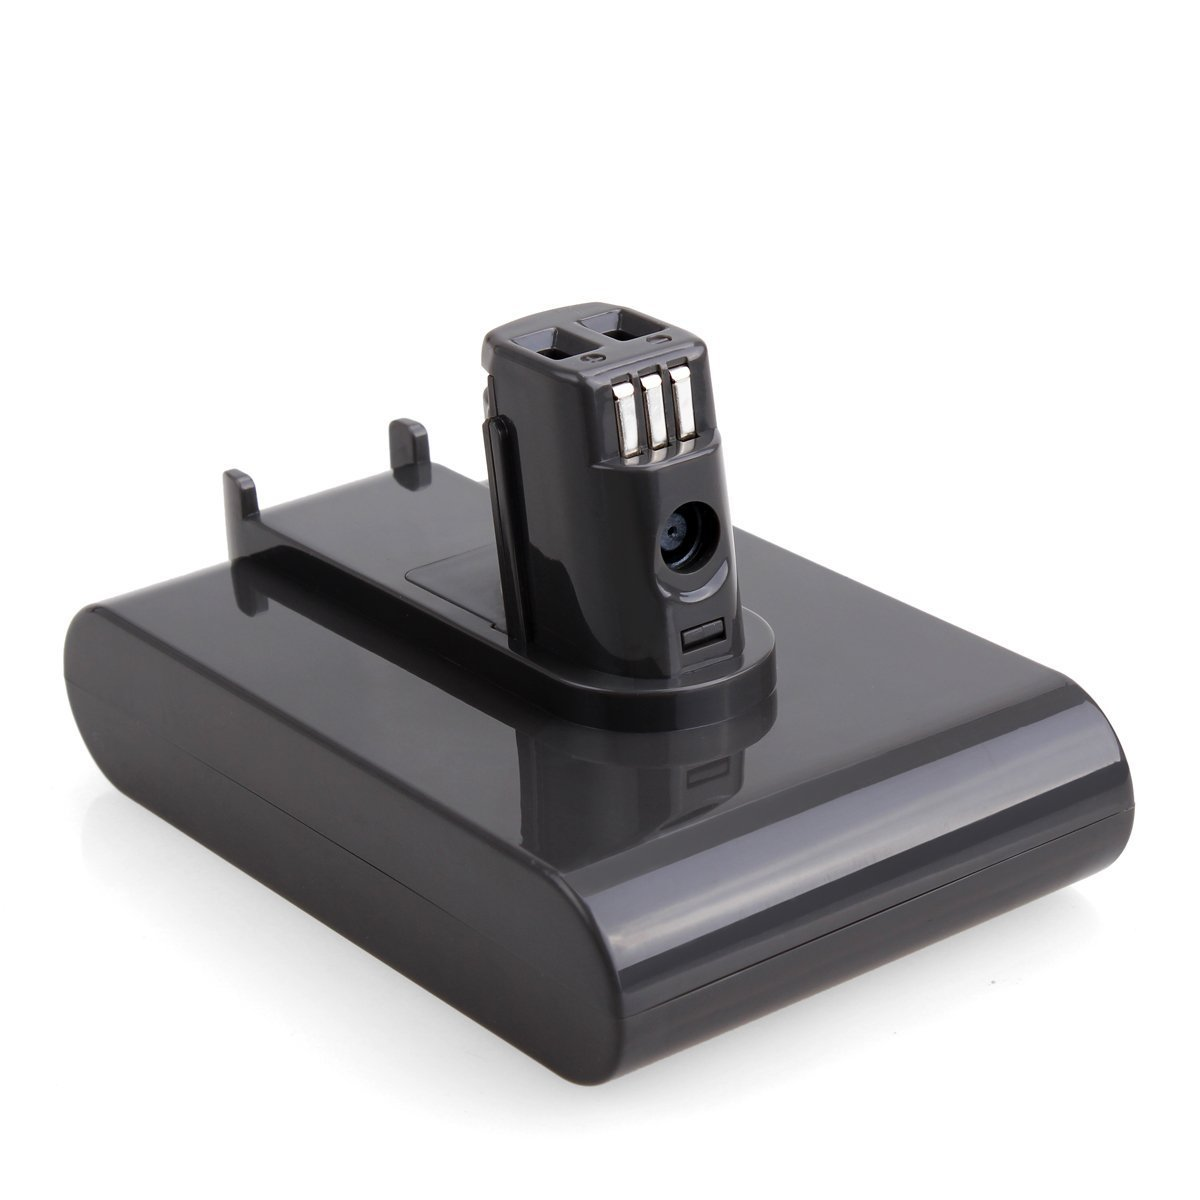 FLAGPOWER Rechargeable Li-ion Replacement Battery 22.2V 2000mAh for Dyson DC31 DC34 DC35 DC44(Not Fit Type B,DC44 MK2)917083-01 91708301 Handheld Vacuum Cleaner